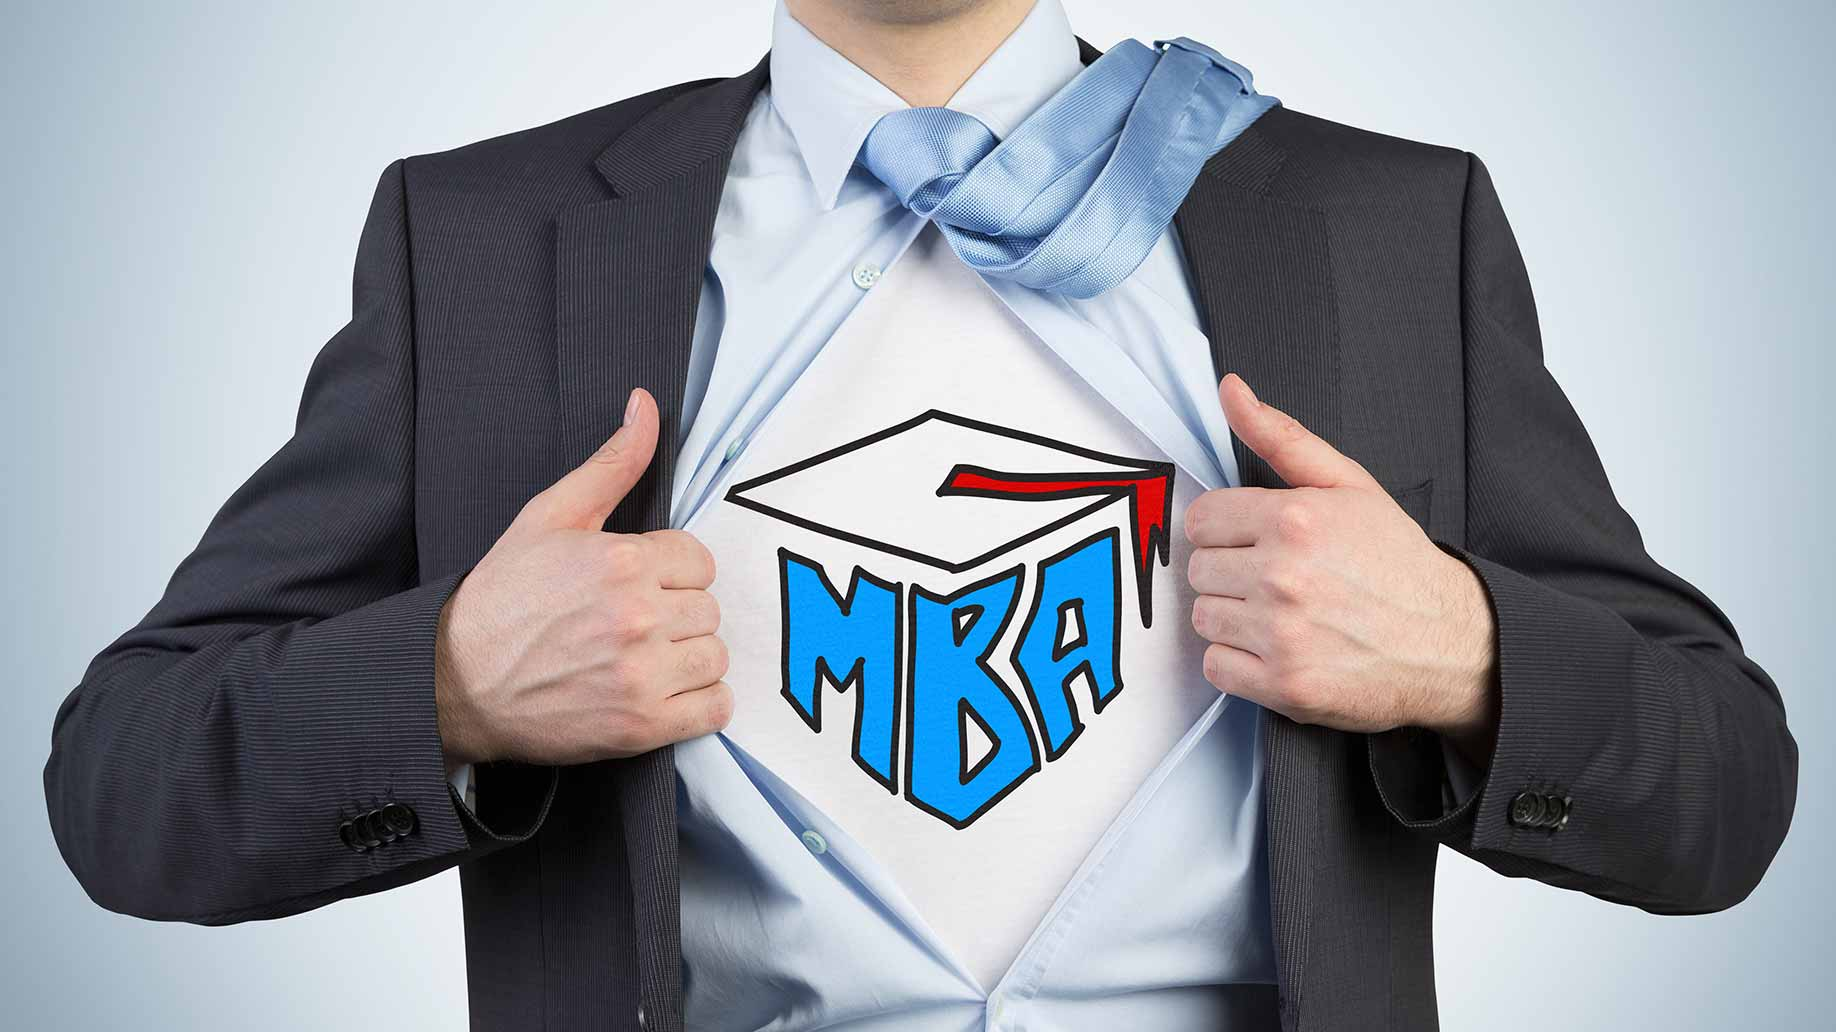 mba superman